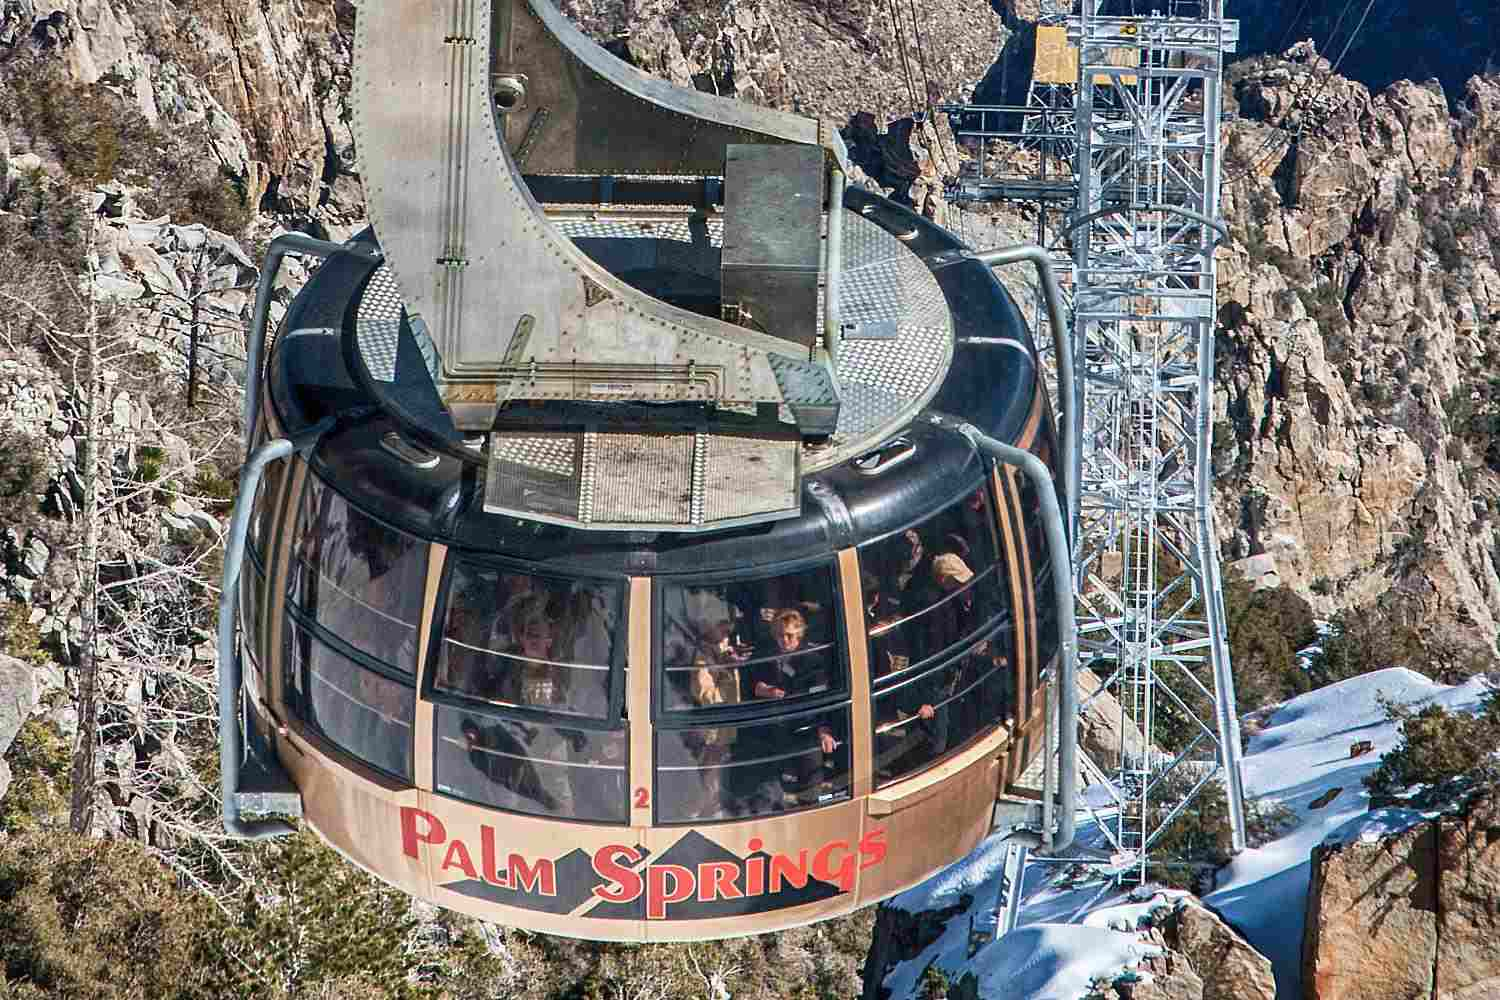 Riding the Palm Springs Tramway